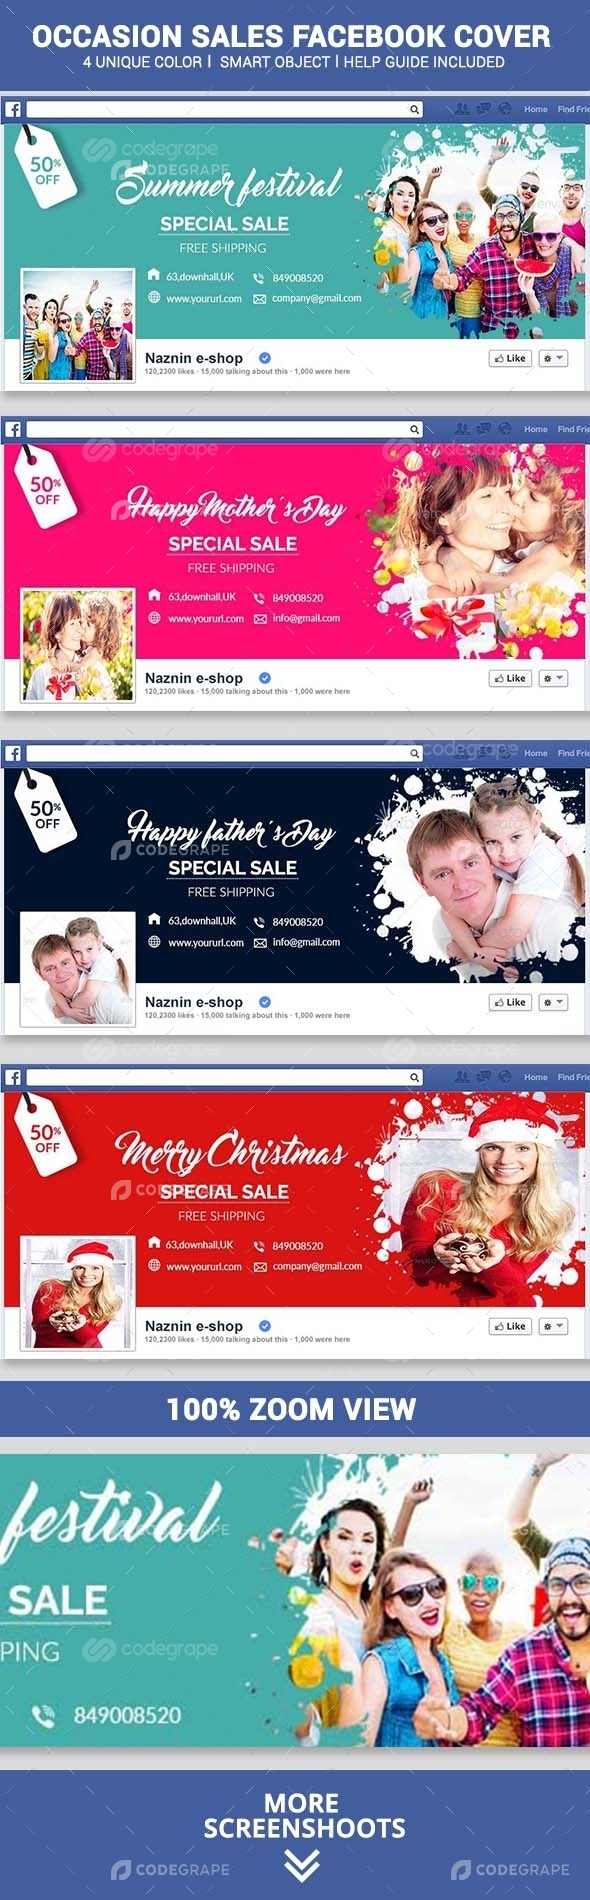 Occasion Sales Facebook Covers